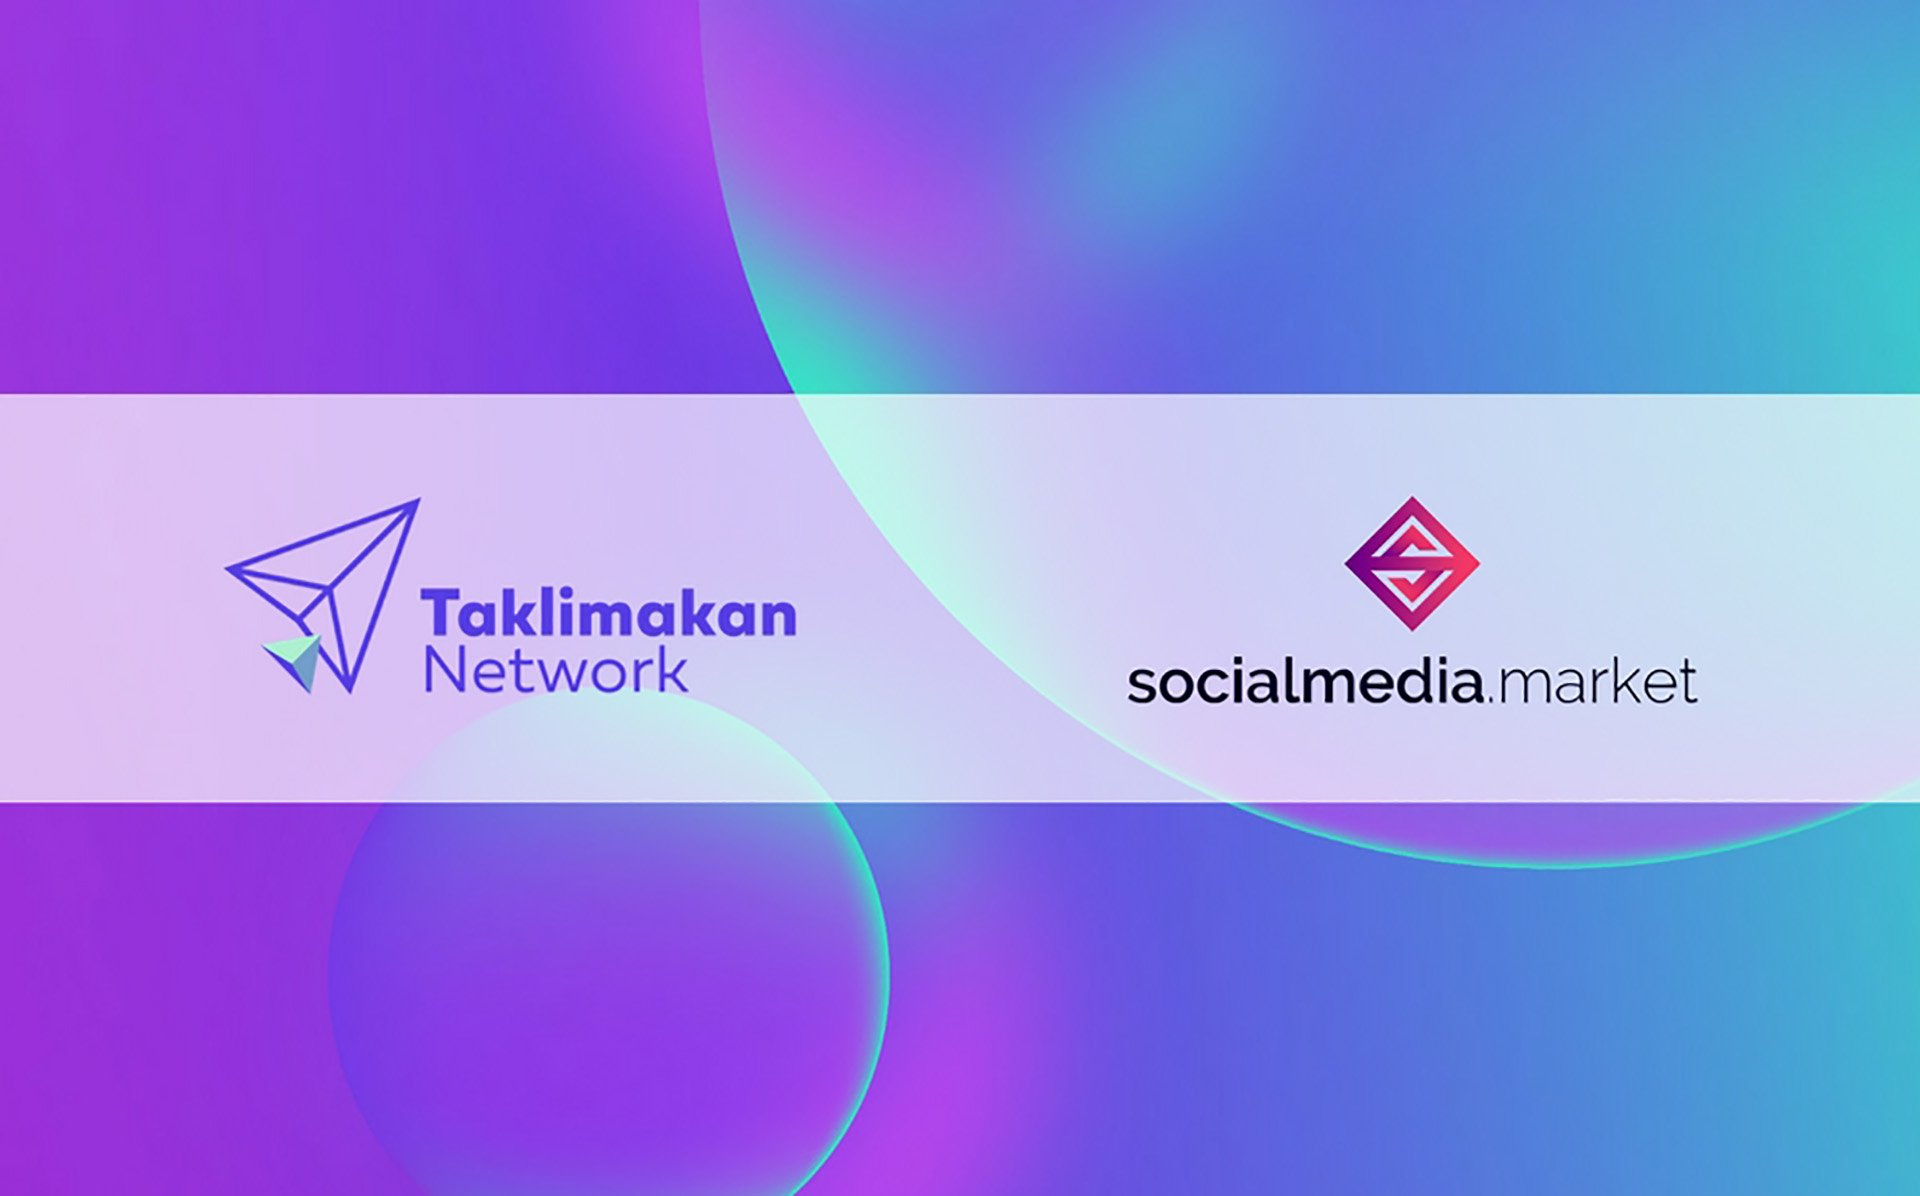 Taklimakan Network and SocialMedia.Market Form Partnership